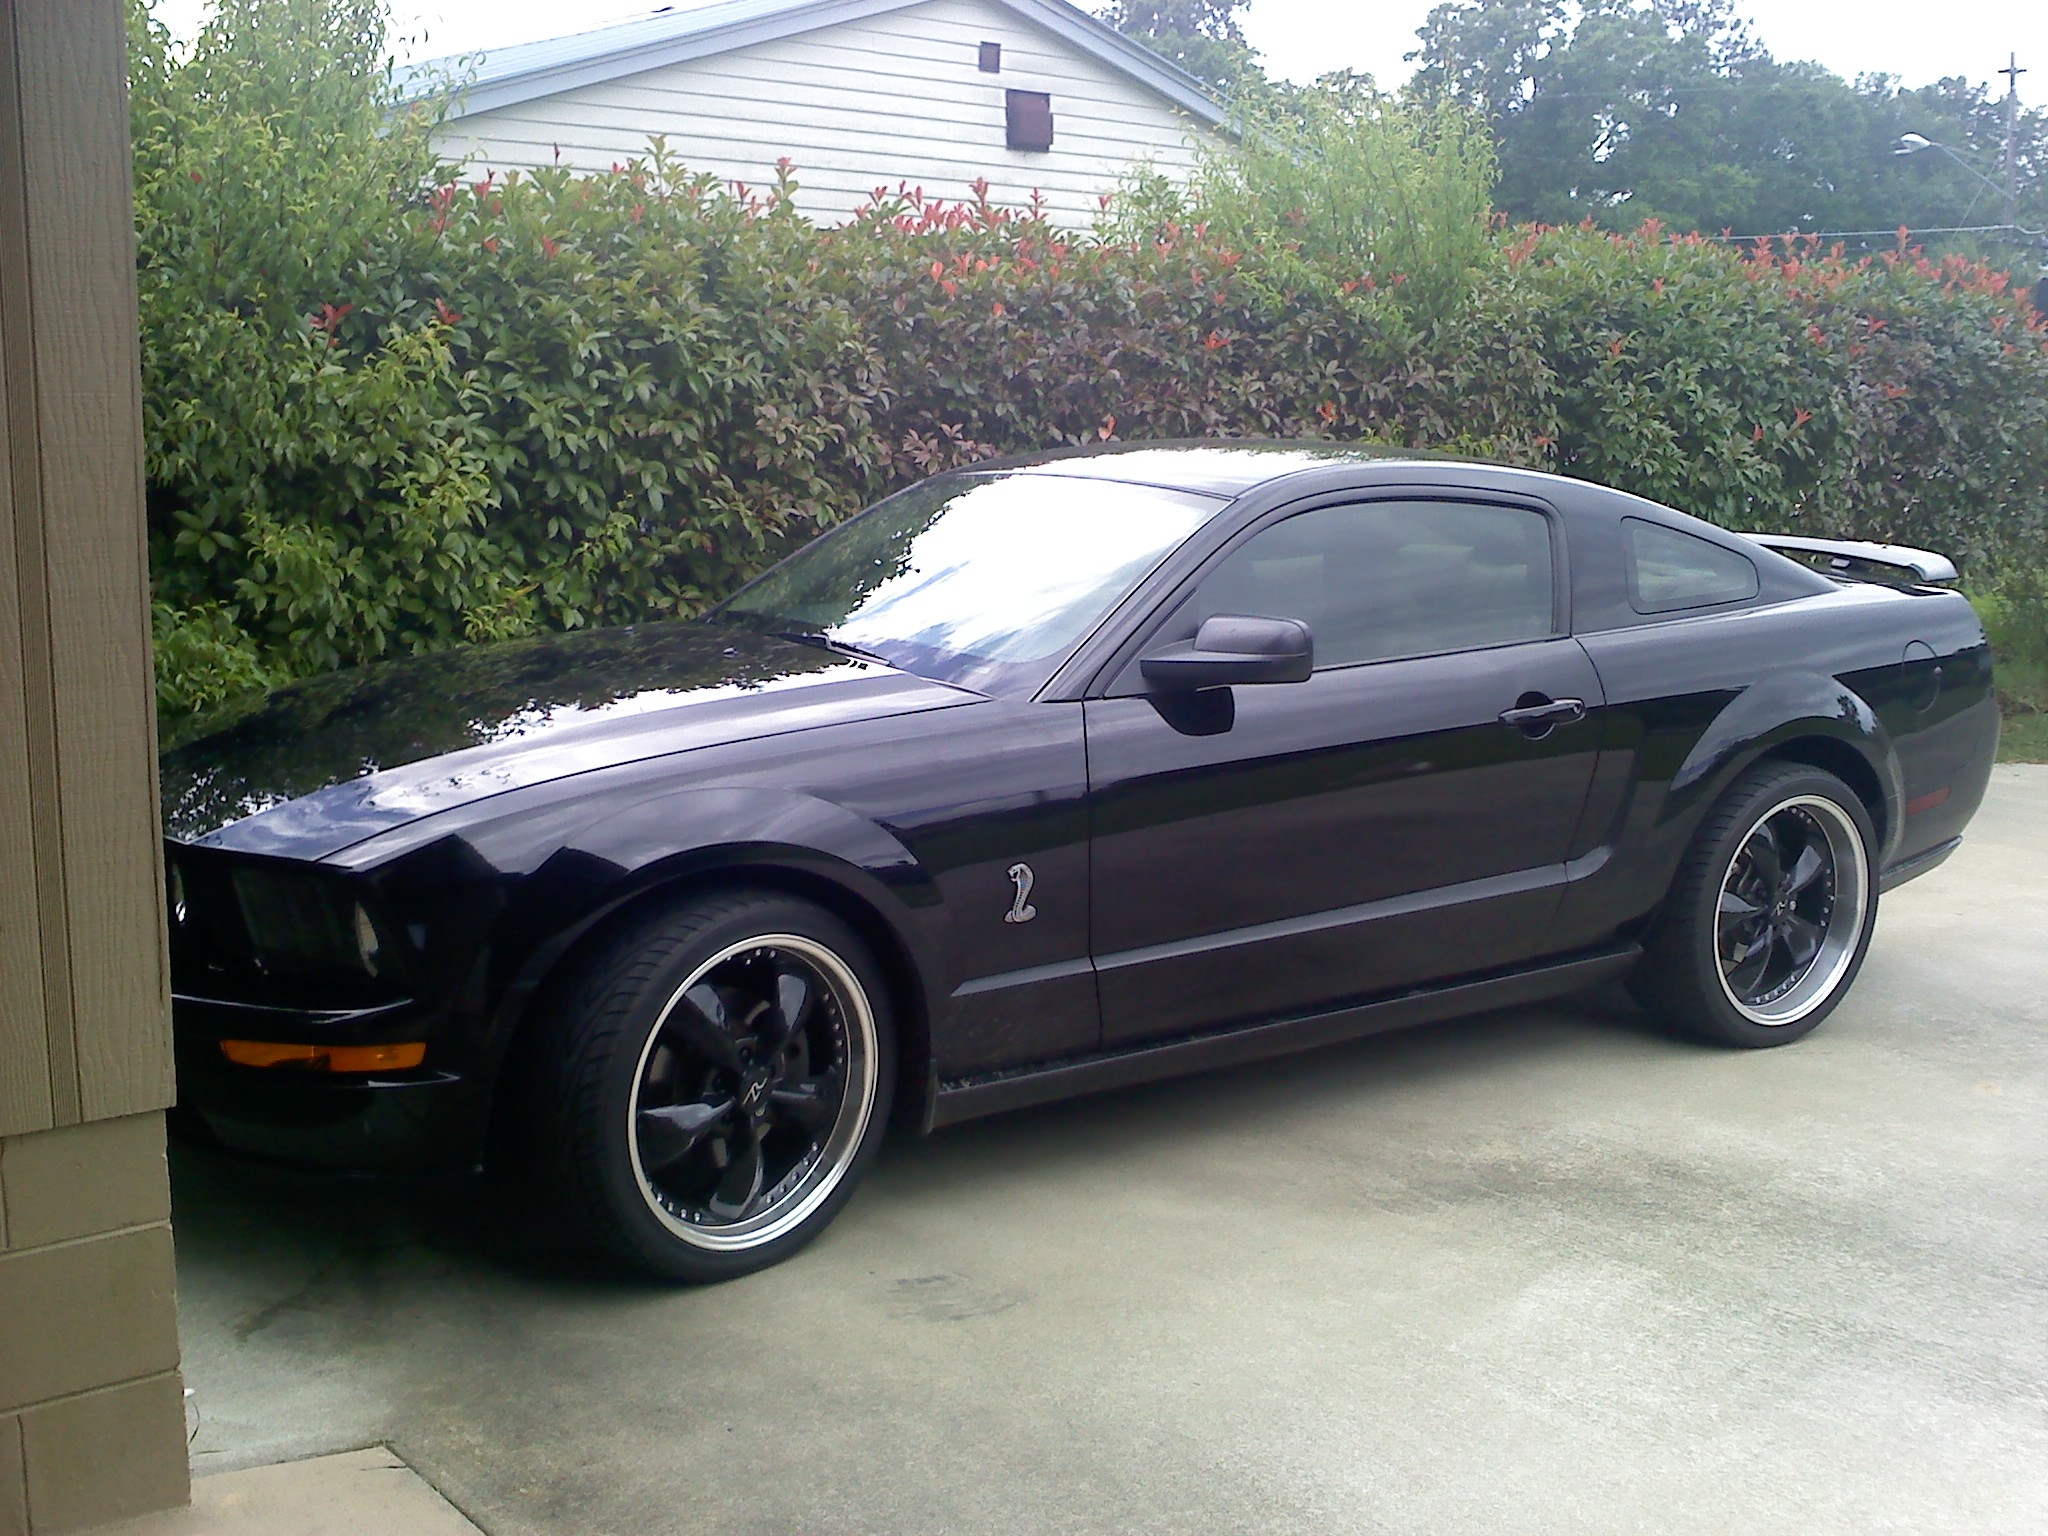 jconaway 2007 ford mustanggt deluxe coupe 2d specs photos modification info at cardomain. Black Bedroom Furniture Sets. Home Design Ideas